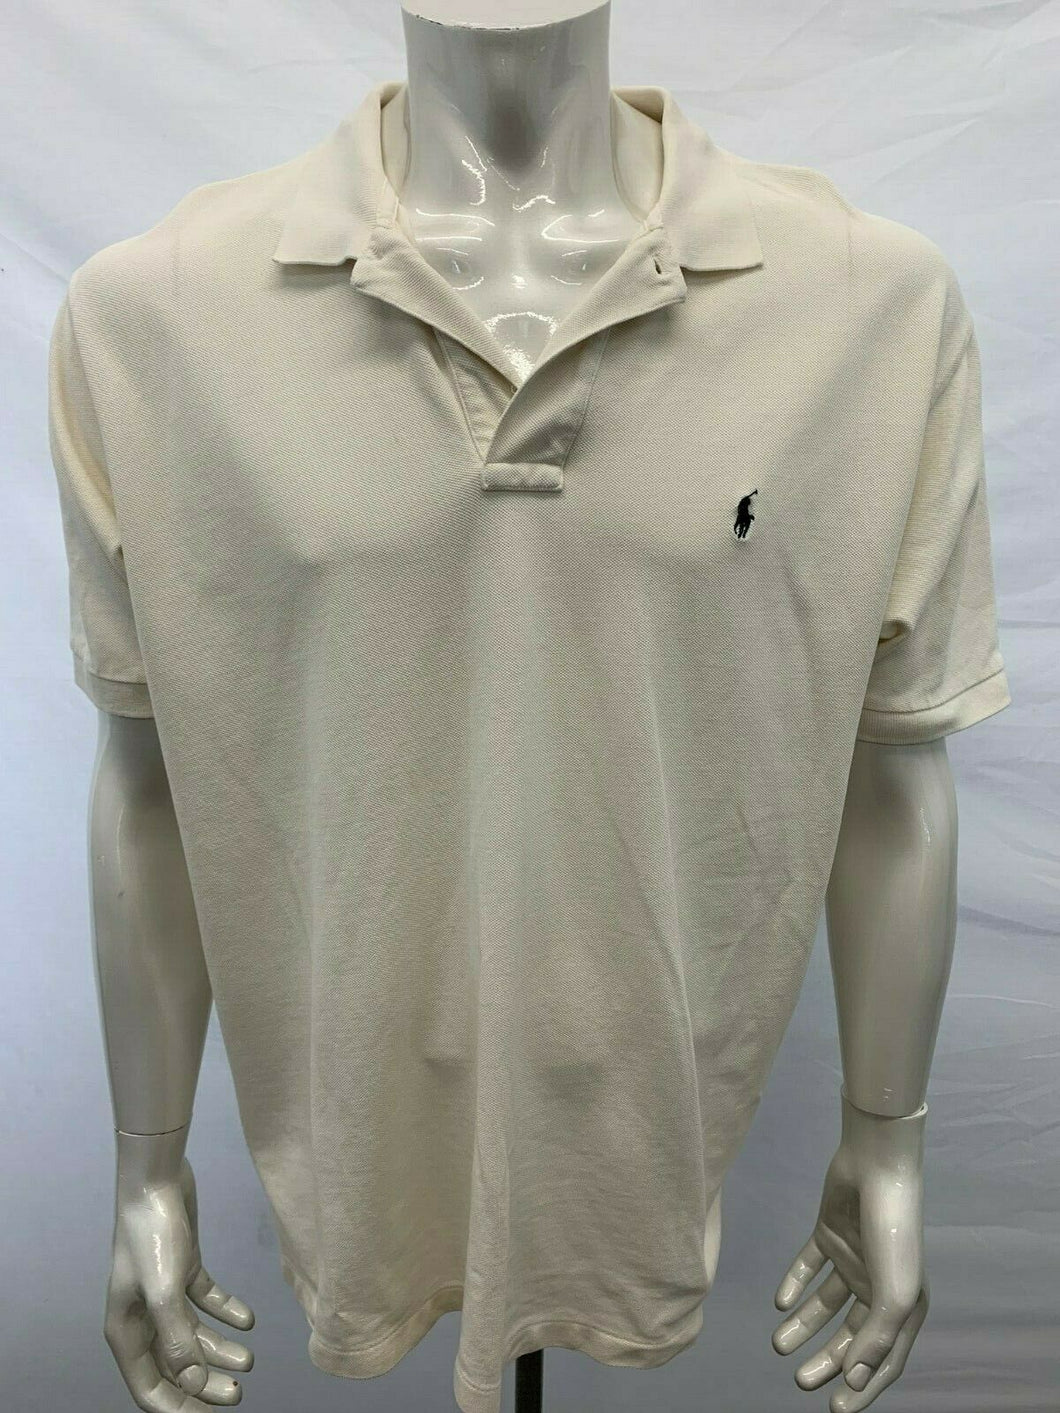 Polo Ralph Lauren Polo Shirt Men's Size XL Beige Short Sleeve Cotton Pique Pony